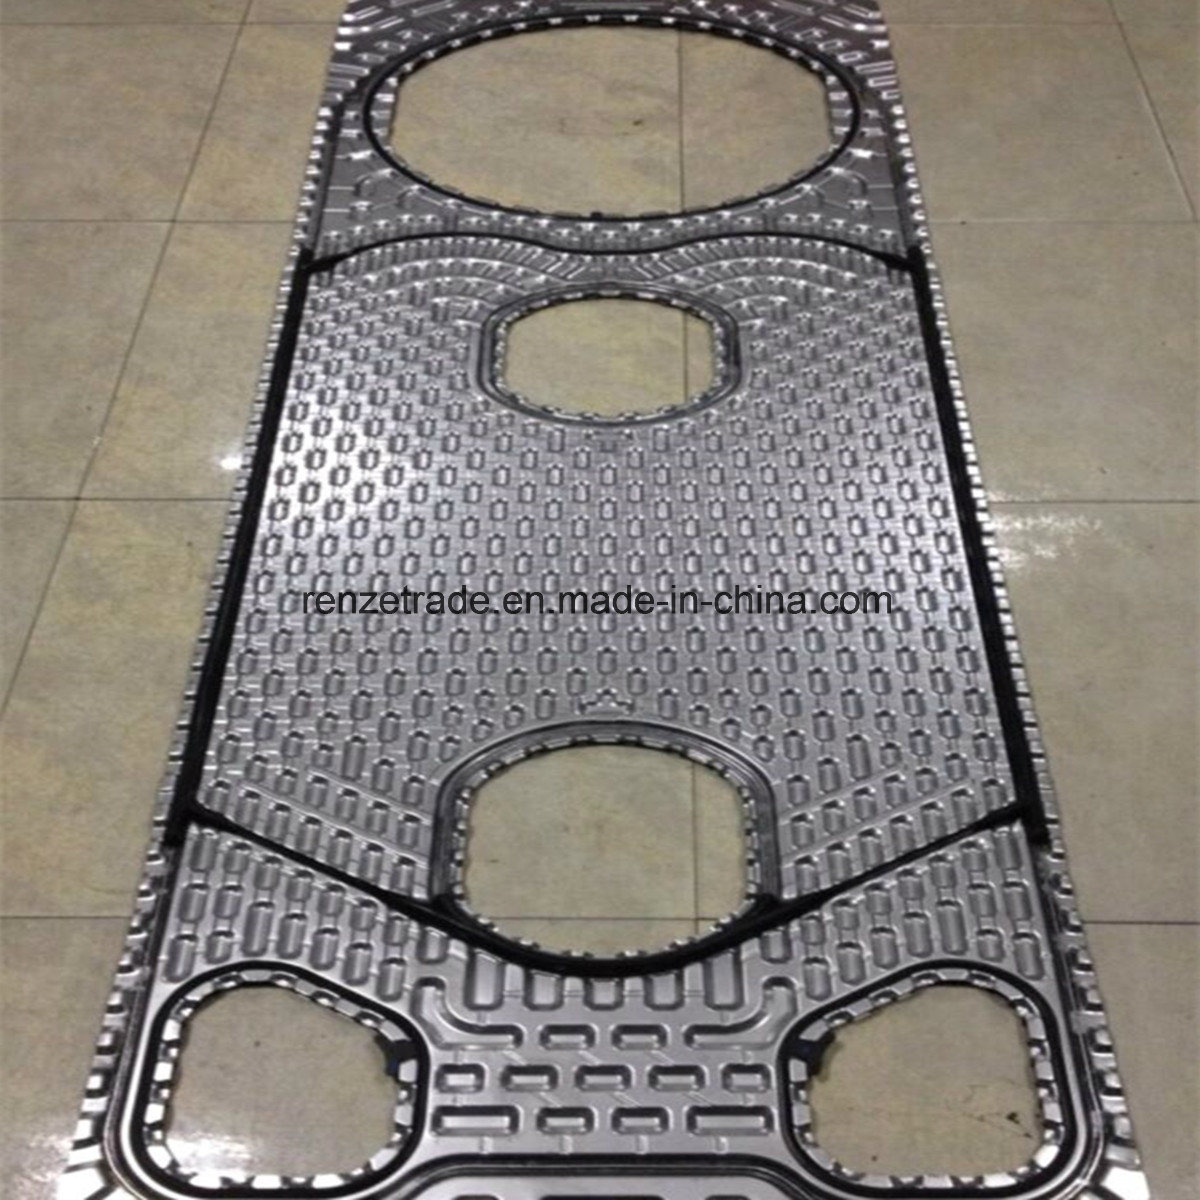 Gasketed Plate Heat Exchanger Spare Parts Equal to Alfa Laval, Apv, Gea, Sigma etc.